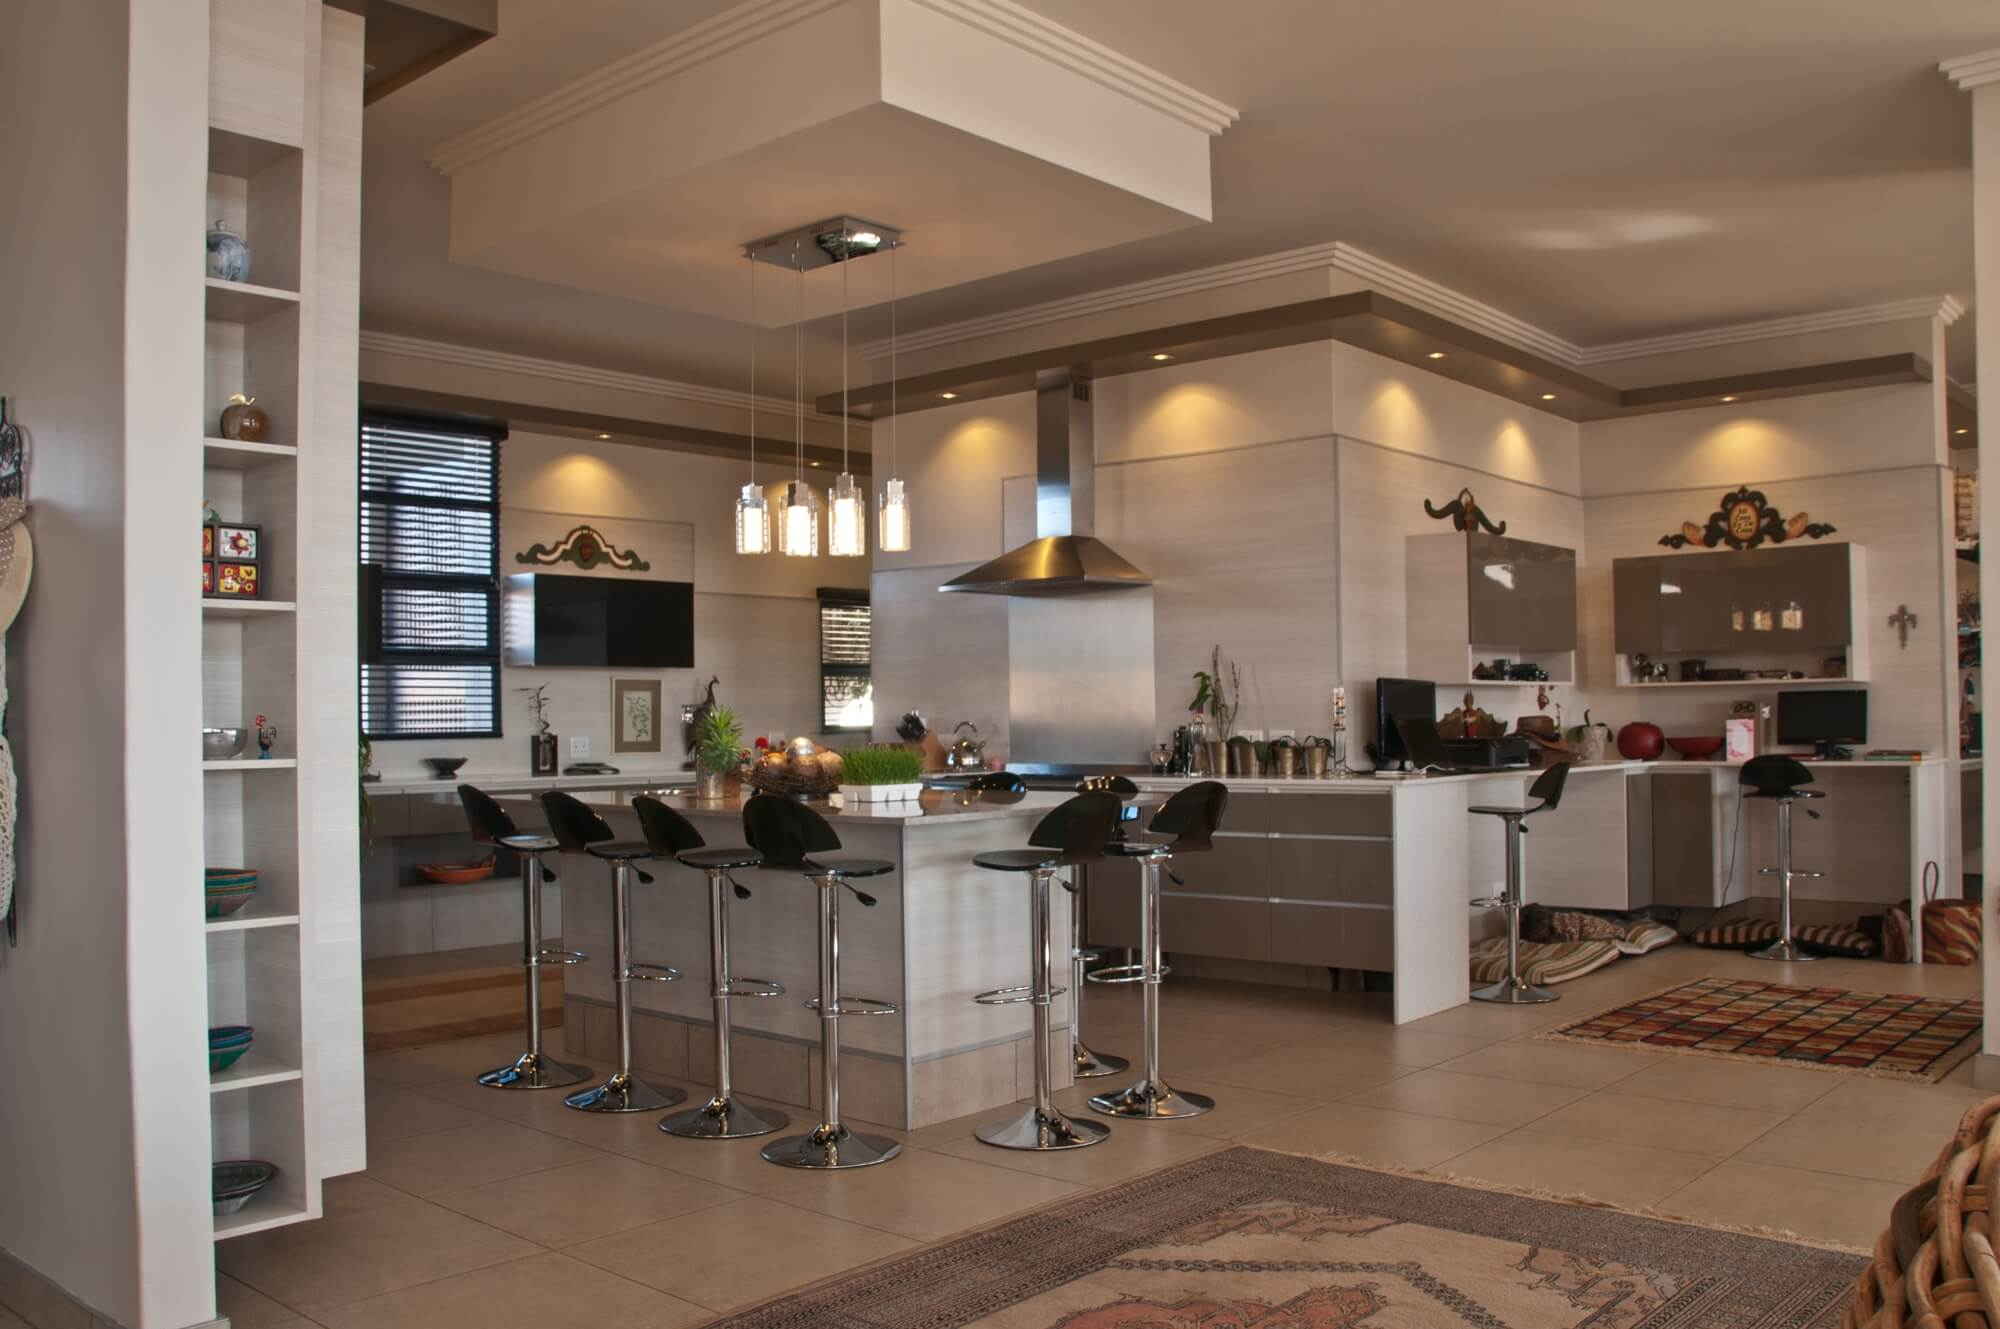 design kitchen design kitchen design pretoria kitchen frontiers contact us 937